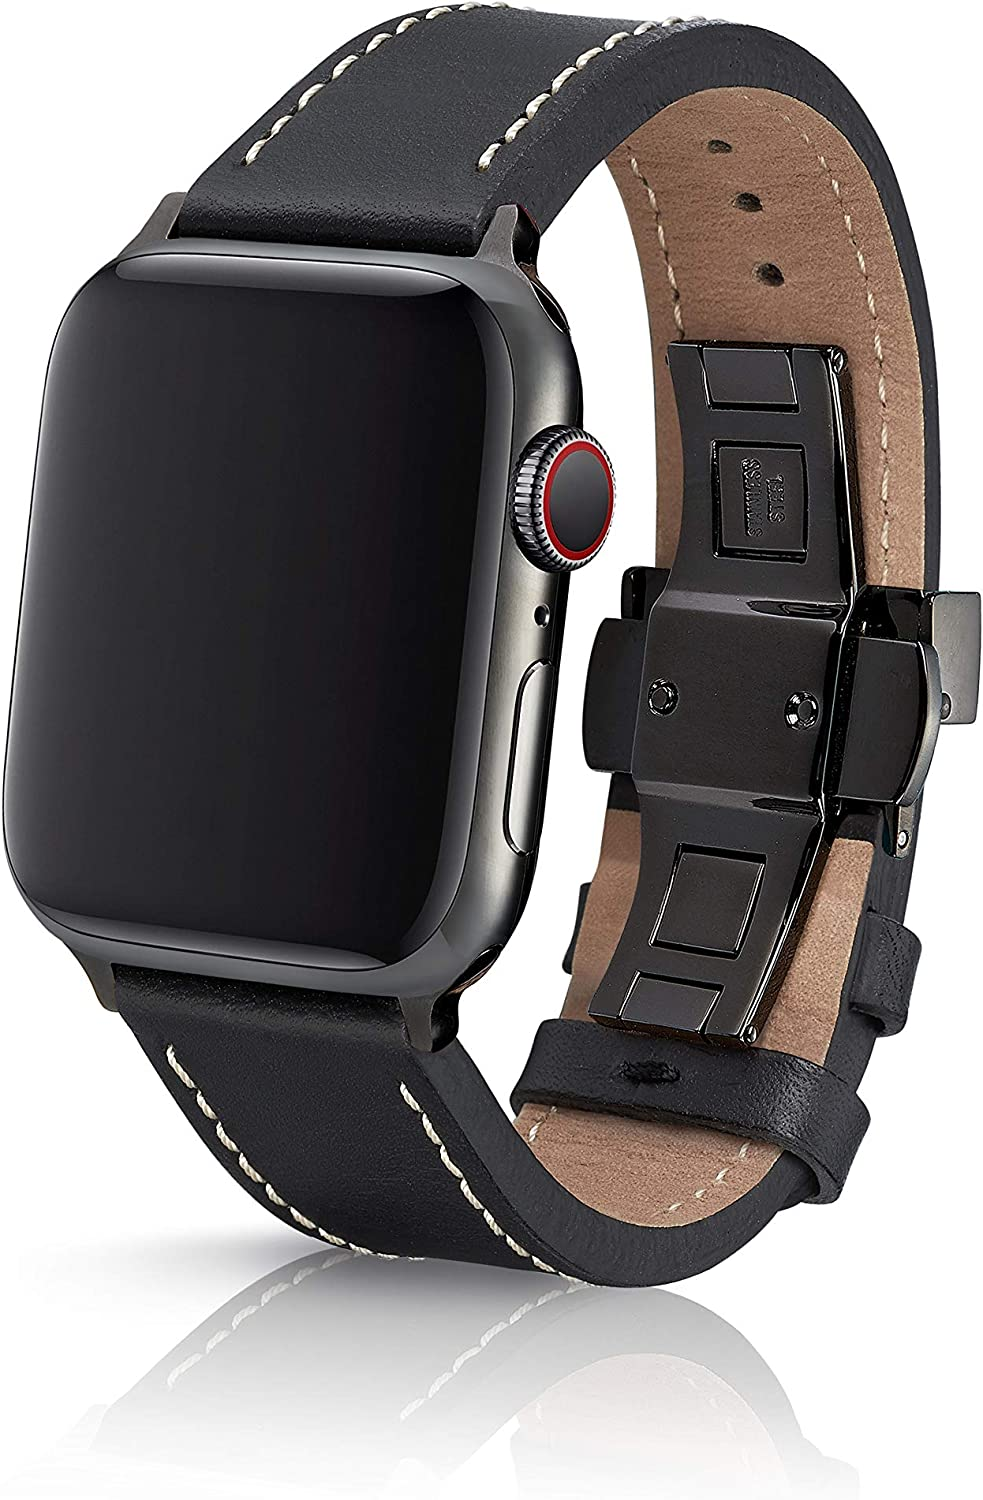 38/40mm JUUK Korza Bianca Premium Watch Band Made for The Apple Watch, Made with Genuine Italian Leather with a Solid Stainless Steel deployant Buckle (Black)